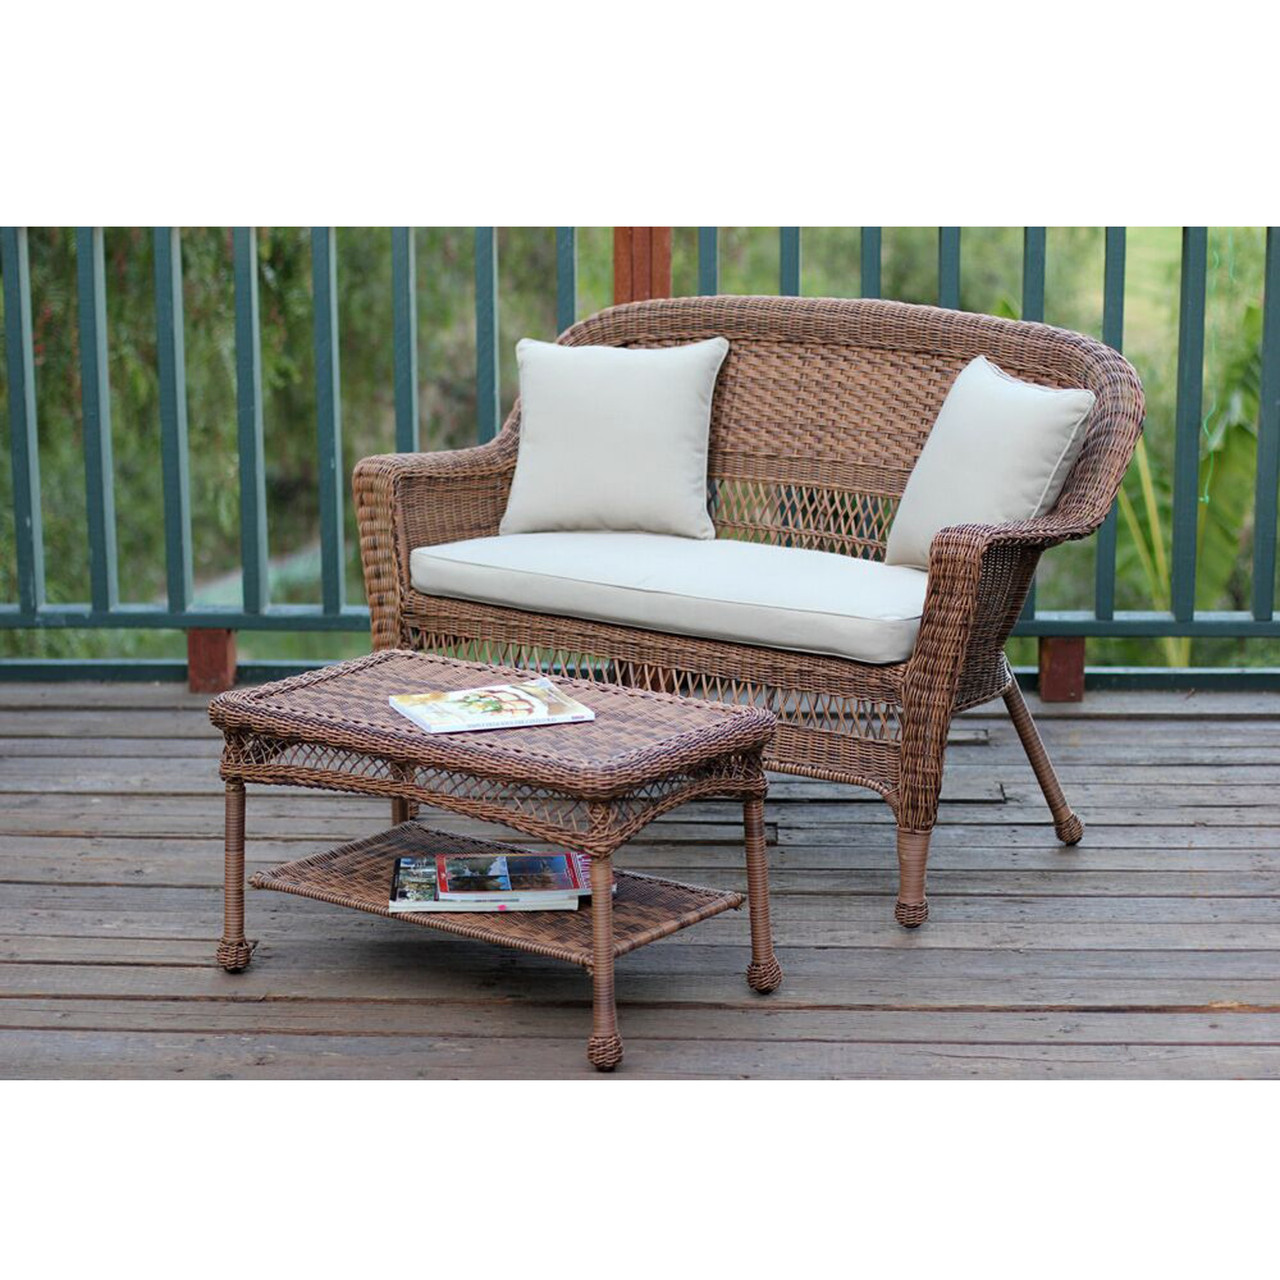 2 piece oswald honey resin wicker patio loveseat and coffee table set tan cushion 51